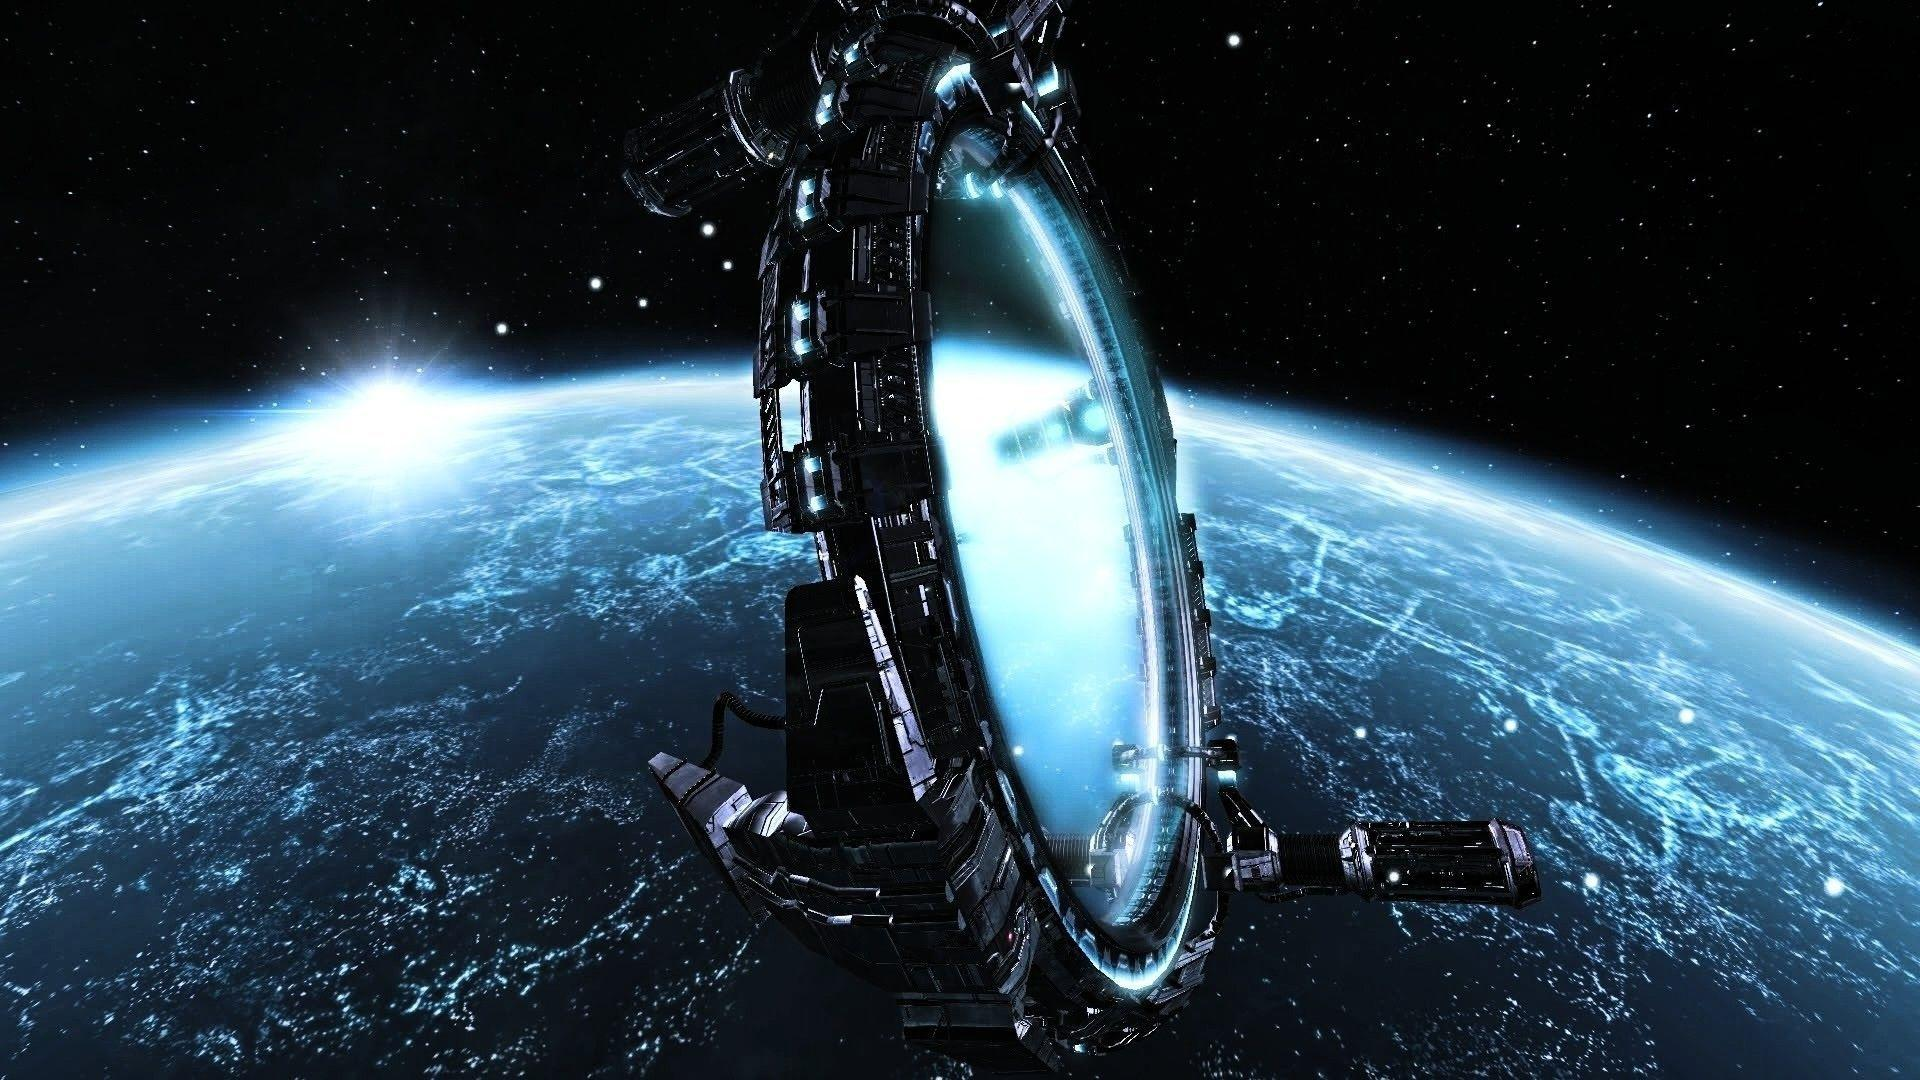 stargate wallpaper universe space - photo #21